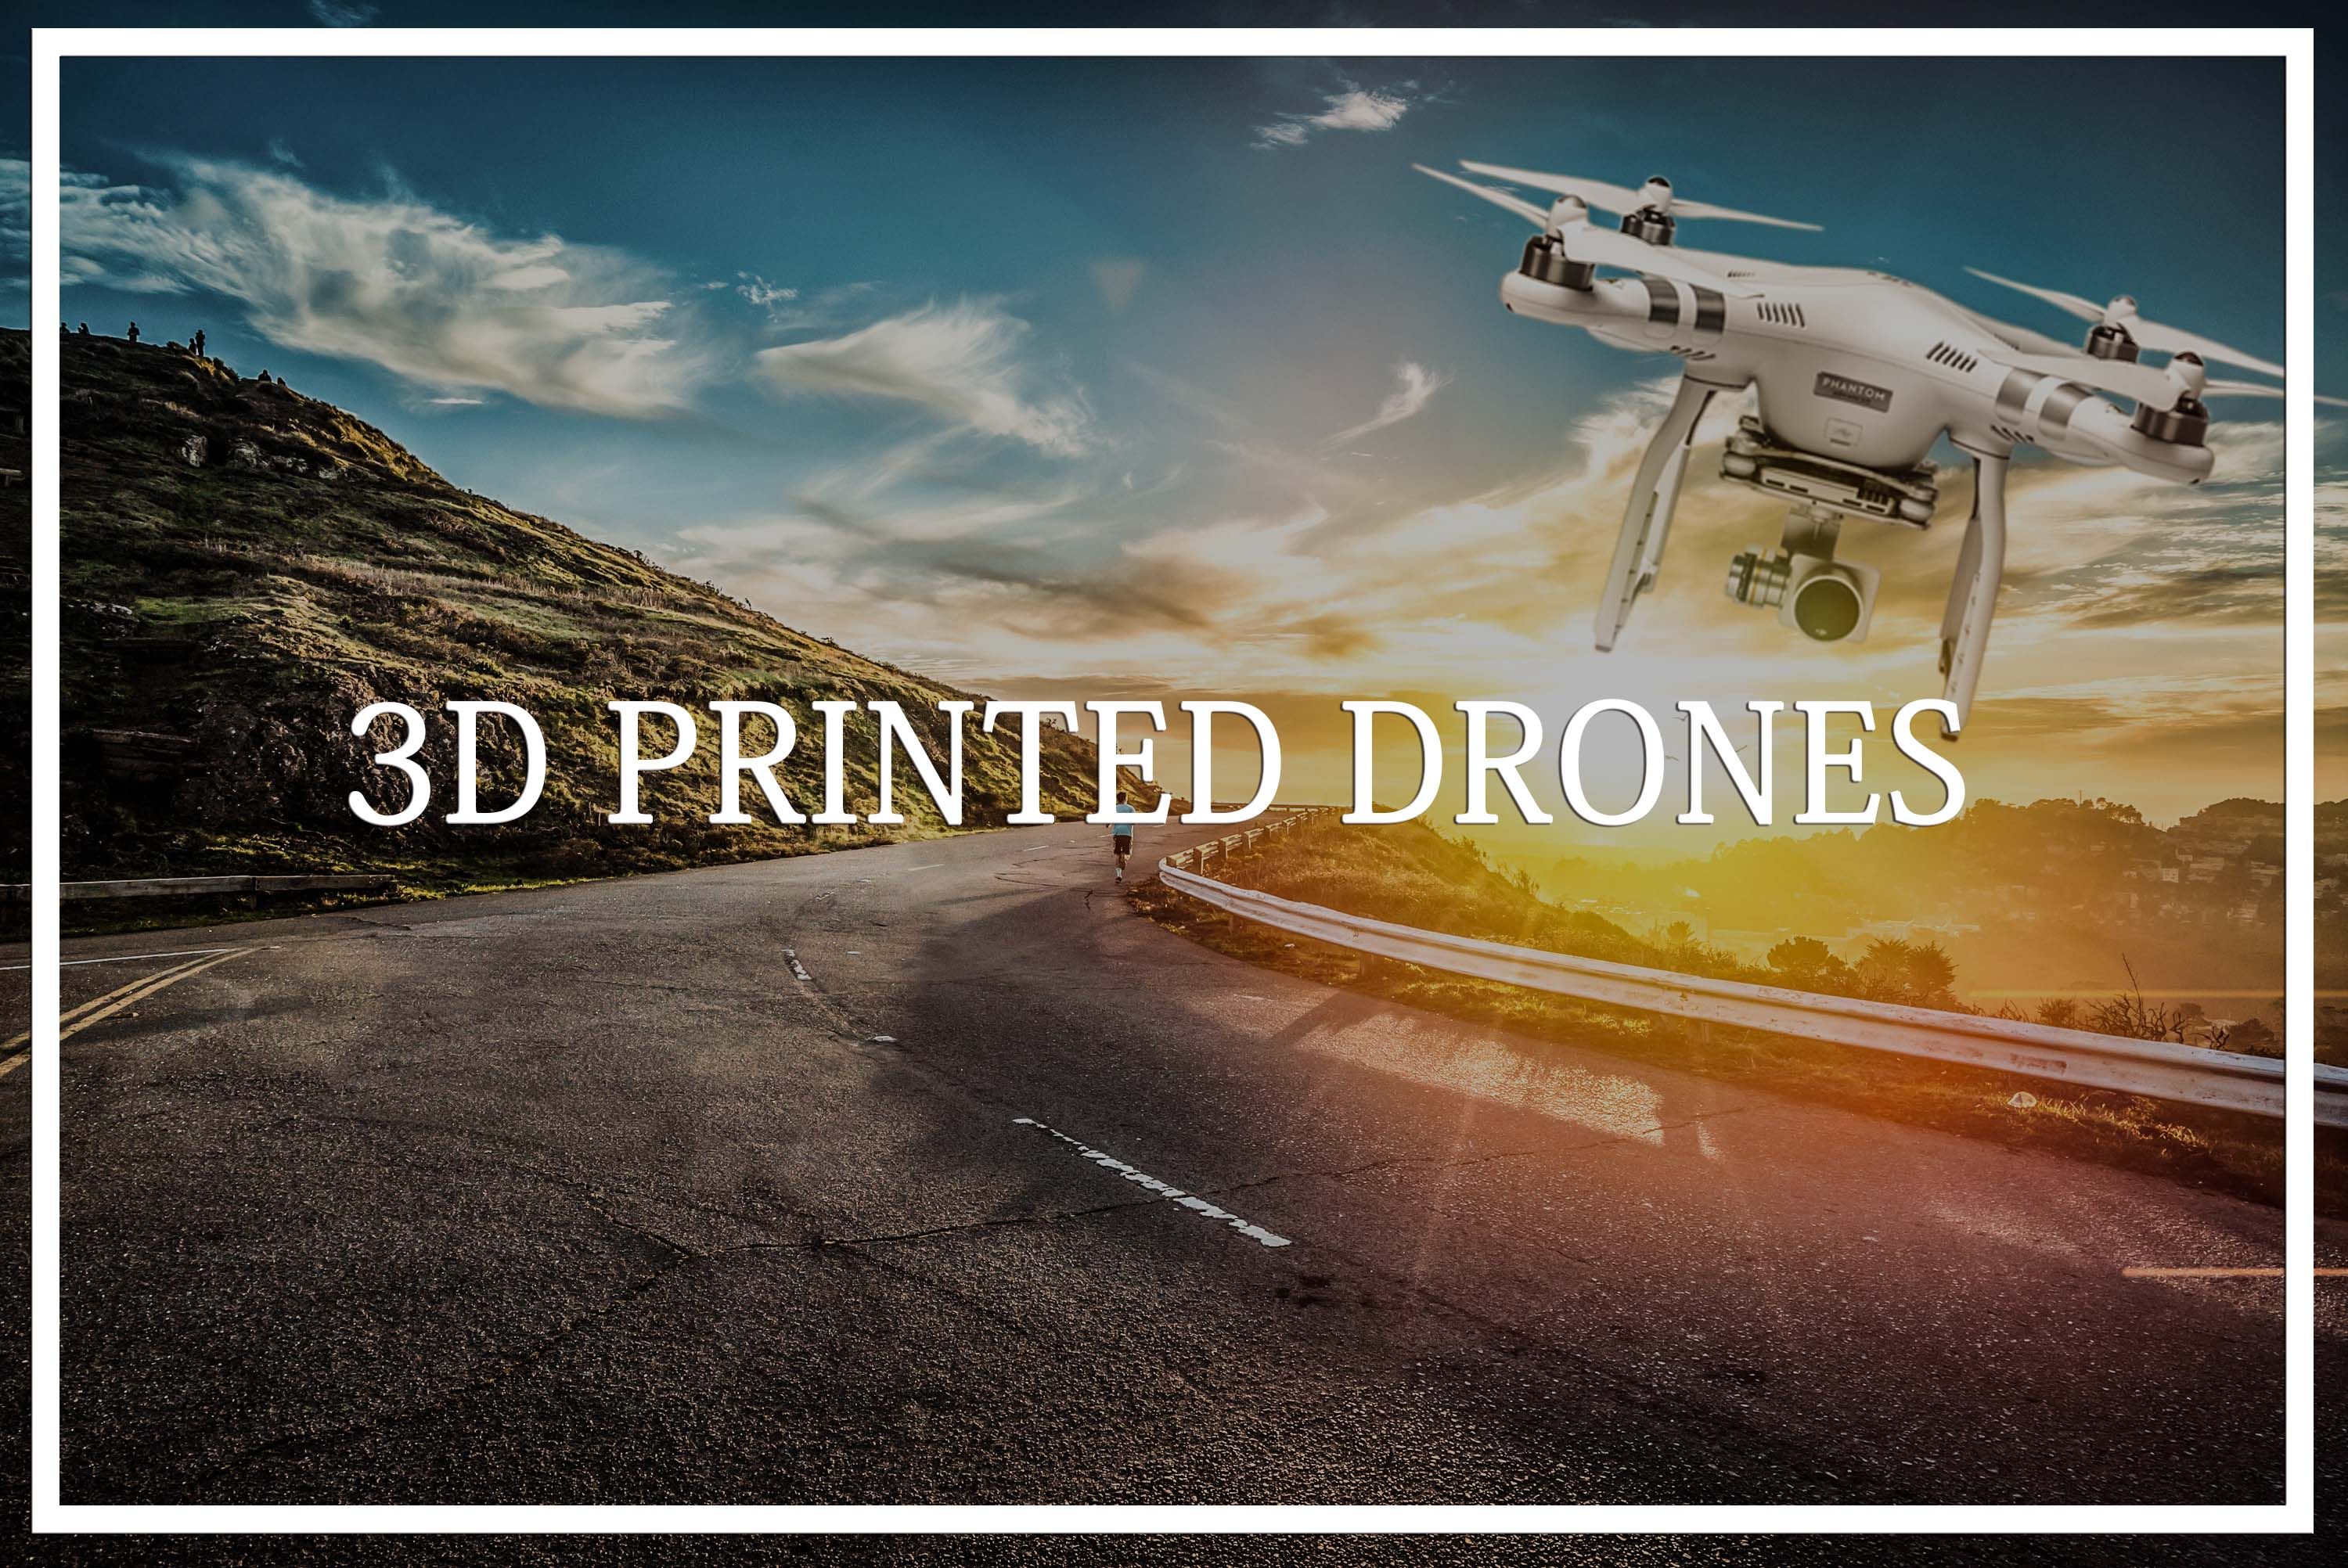 3D Printed Drones: All You Need to Know